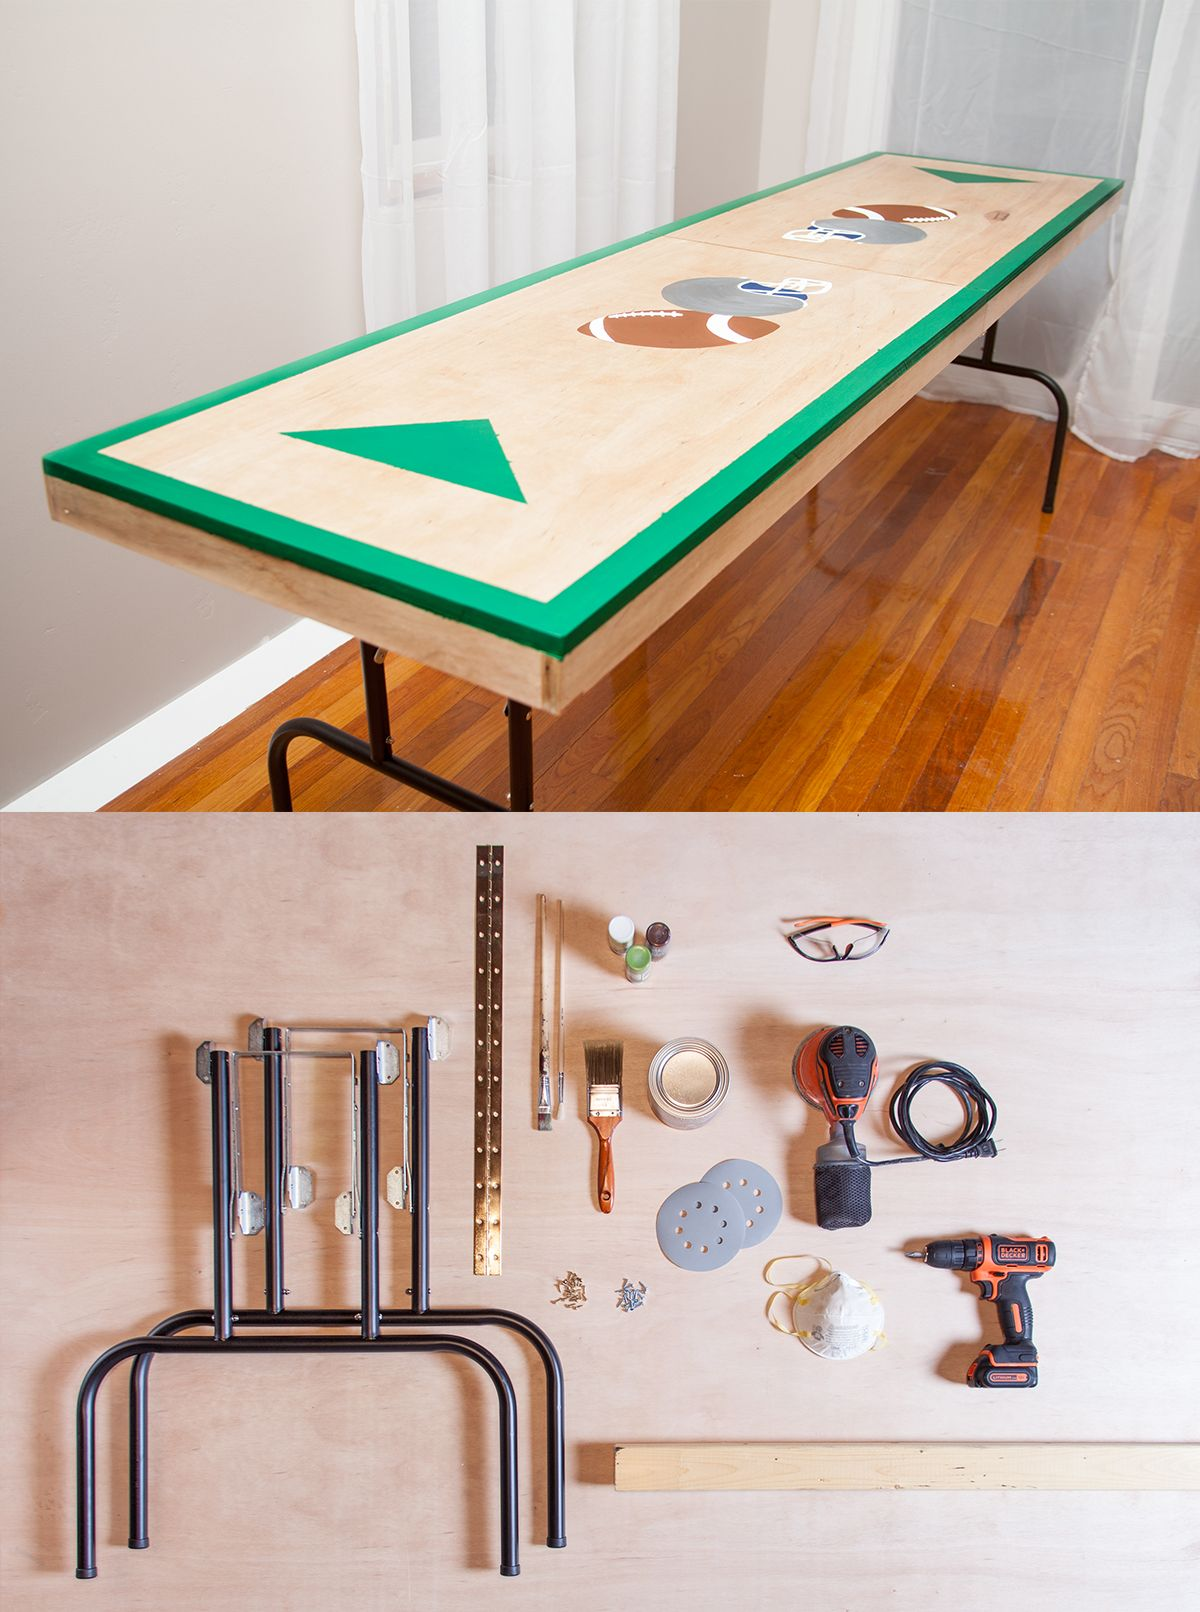 How To Build A Beer Pong Table Beer Pong Tables Beer